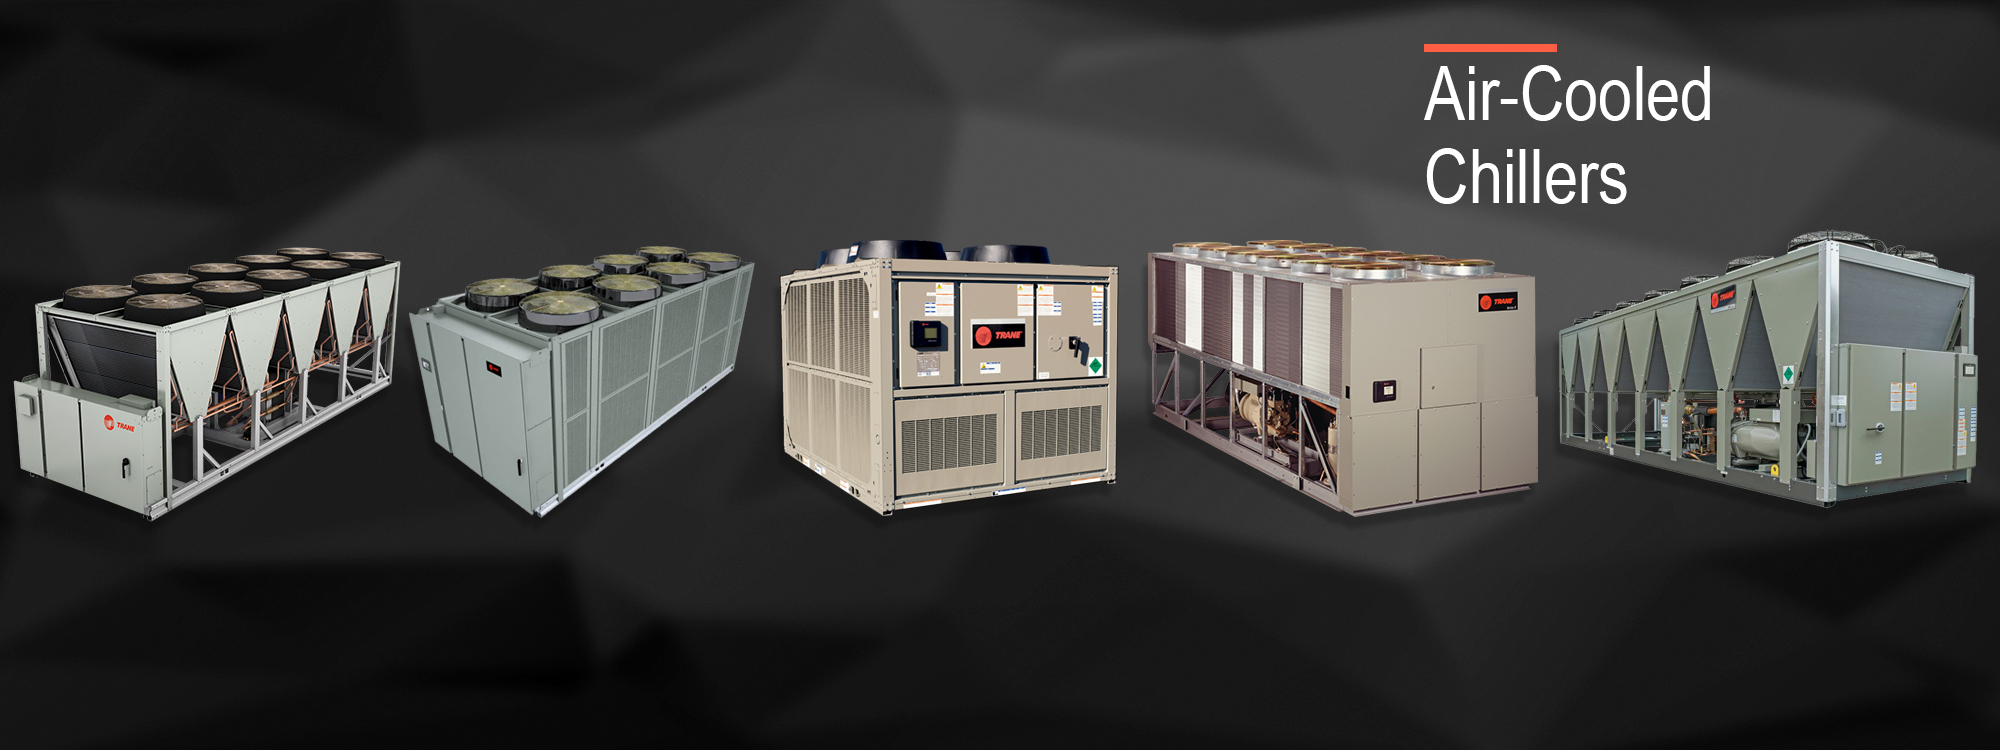 Air Cooled Chillers Trane Commercial 15 5 Hp Kohler Charging Wiring Diagram Offers A Portfolio Of For Variety Applications Ranging From Maintaining Comfort In Building To Cooling Process